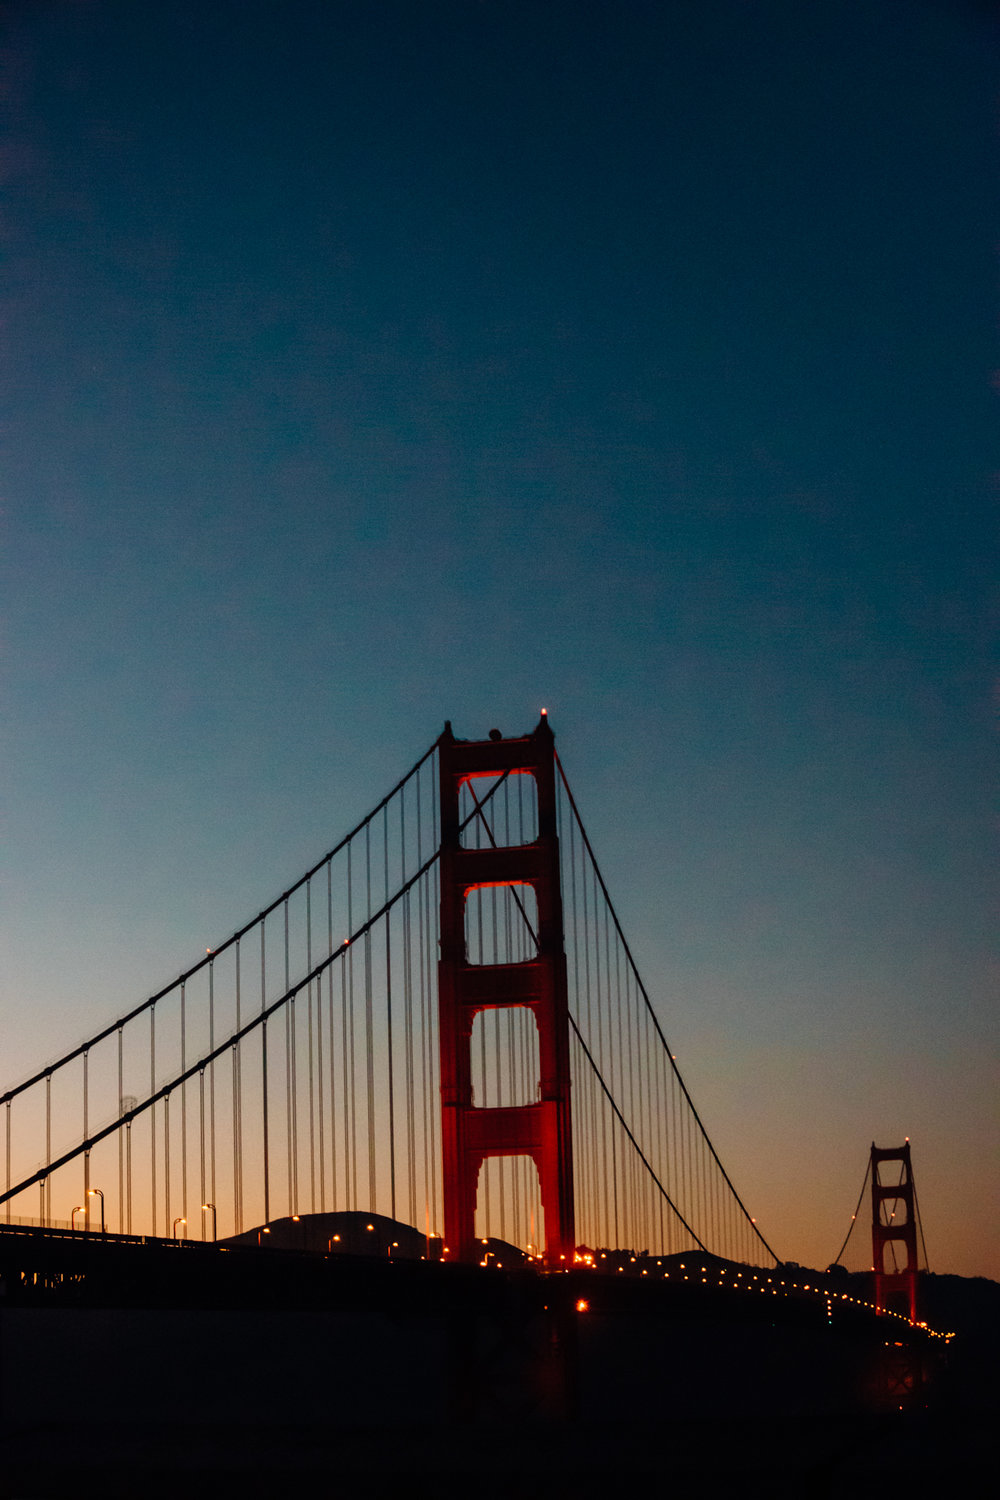 Golden Gate Bridge San Francisco California USA | A Beautiful Distraction by Ruo Ling Lu